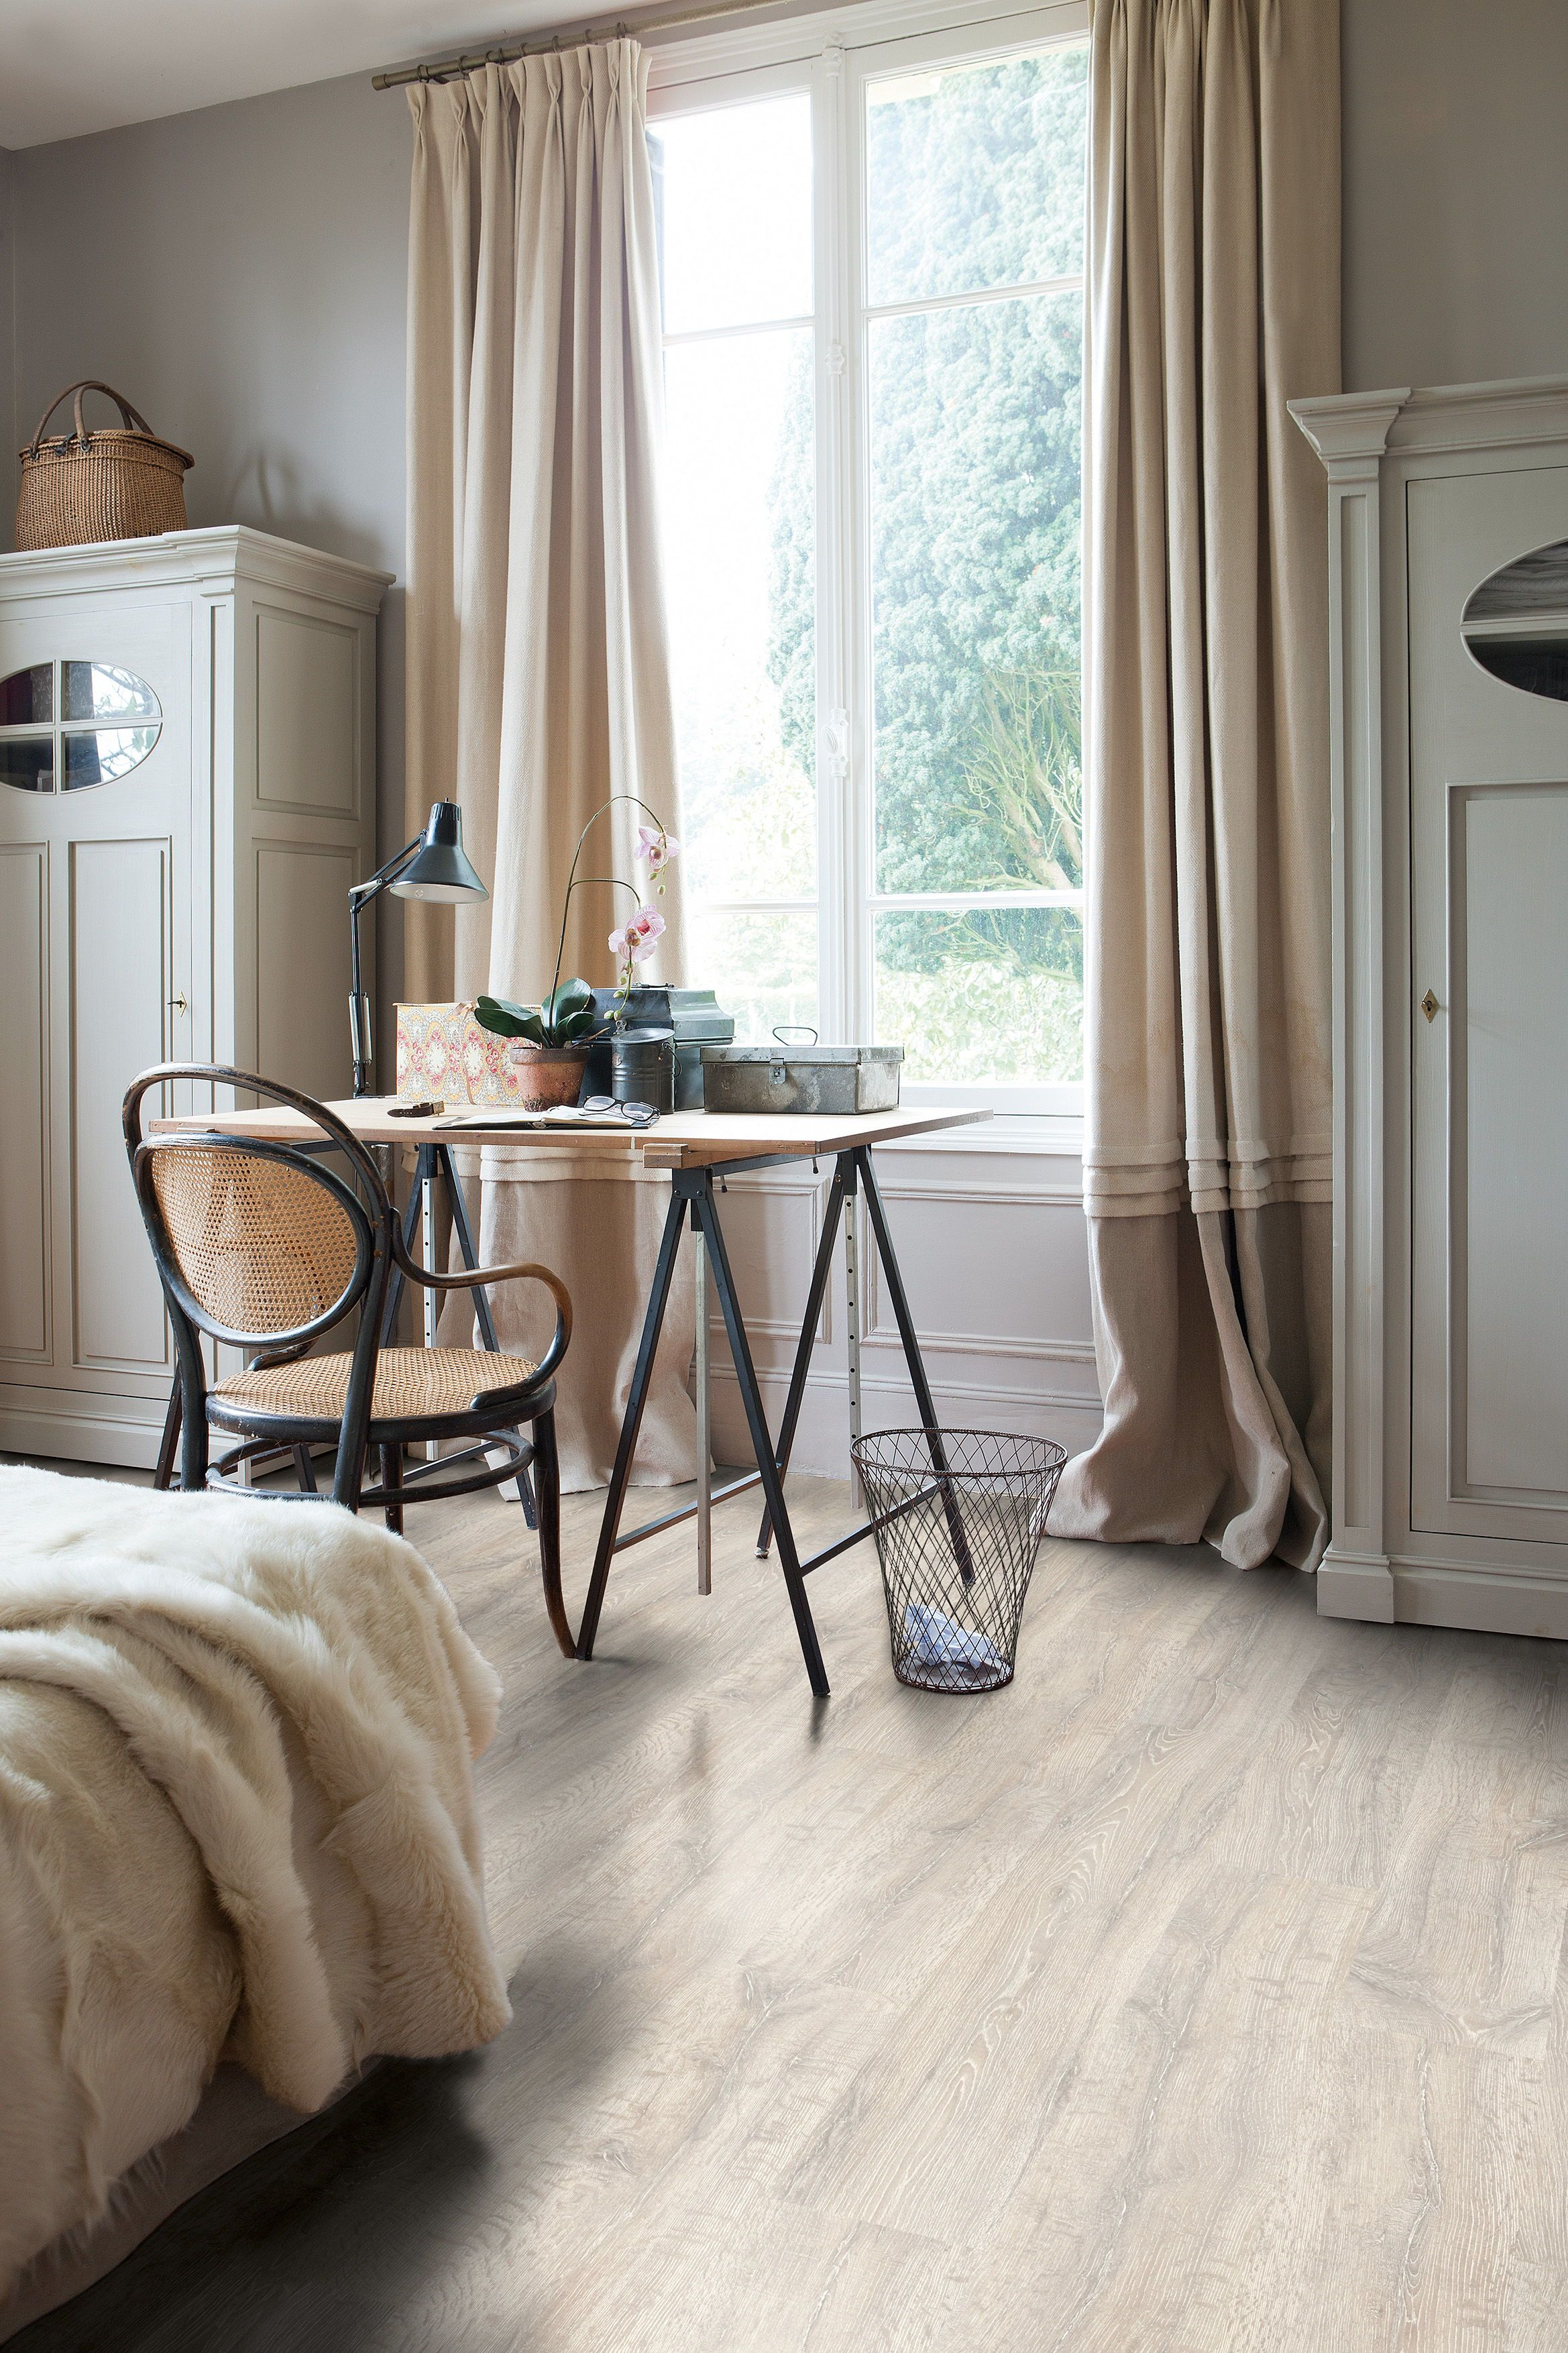 Quick Step Laminate Flooring Classic Reclaimed White Patina Oak Planks Cl1653 In A Country Office Click Here To D Bedroom Flooring Home Decor Oak Planks